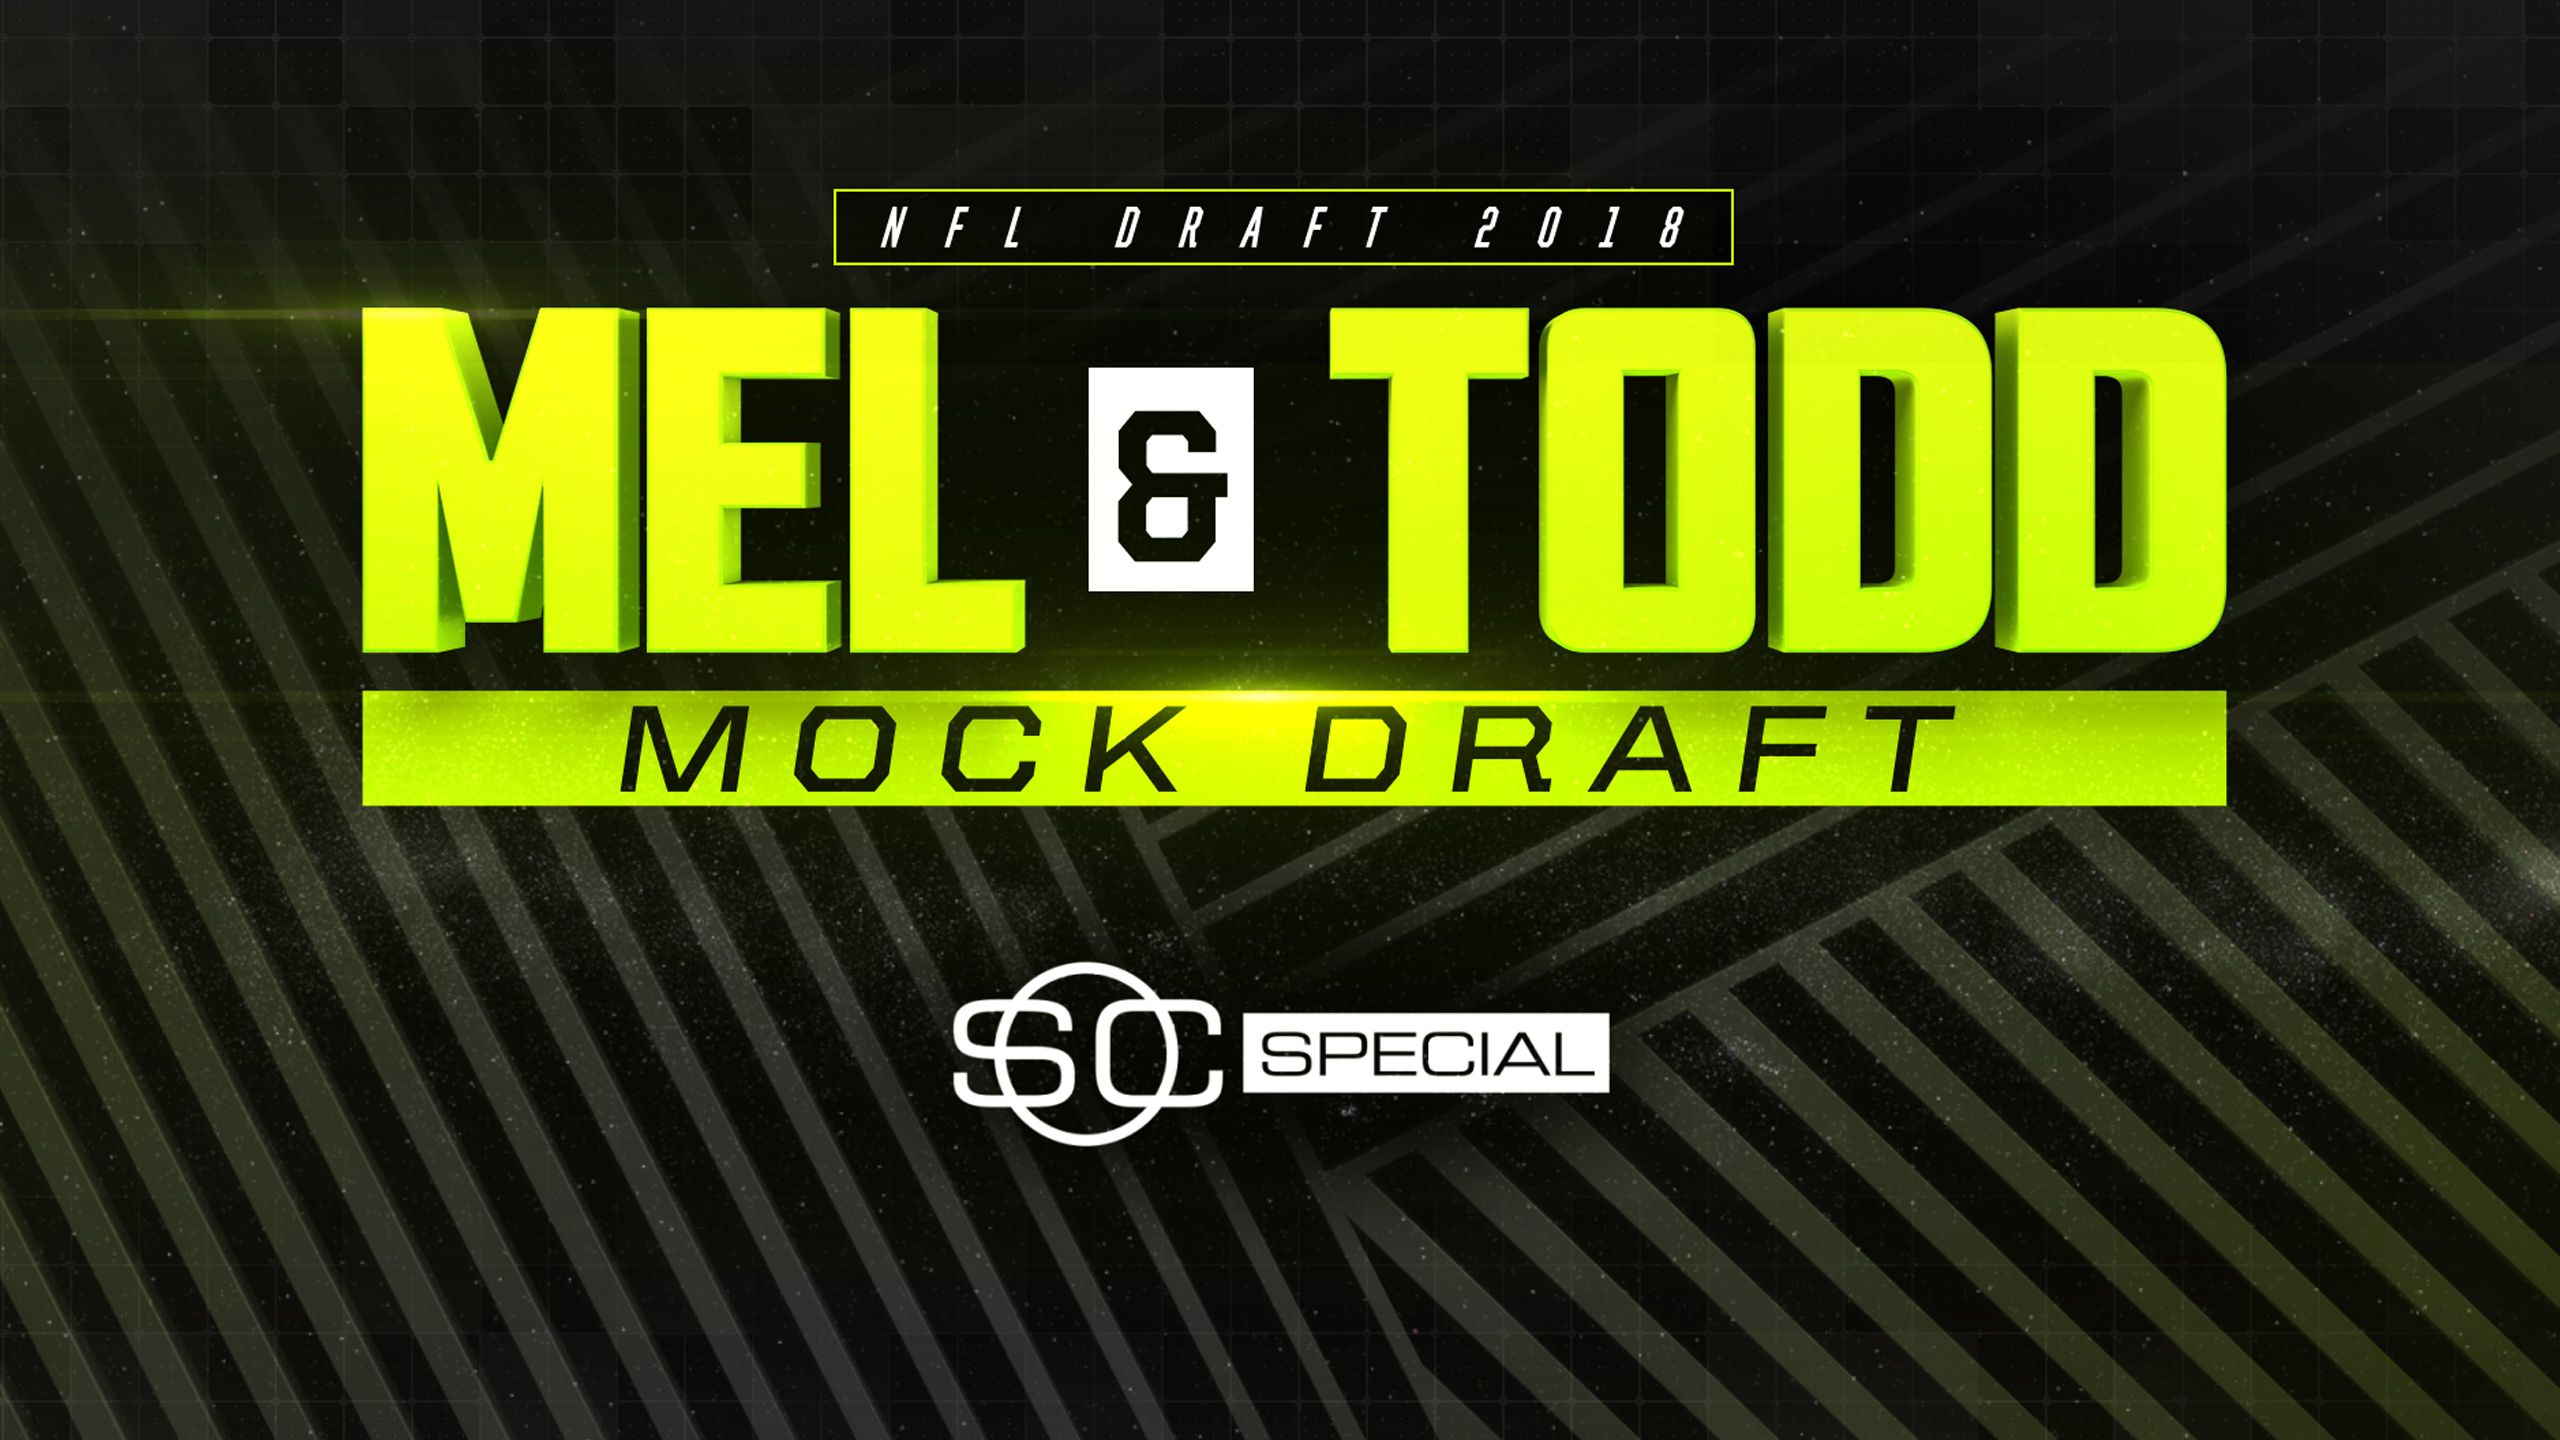 SportsCenter Special presented by Maui Jim Sunglasses: Mel and Todd's Mock Draft